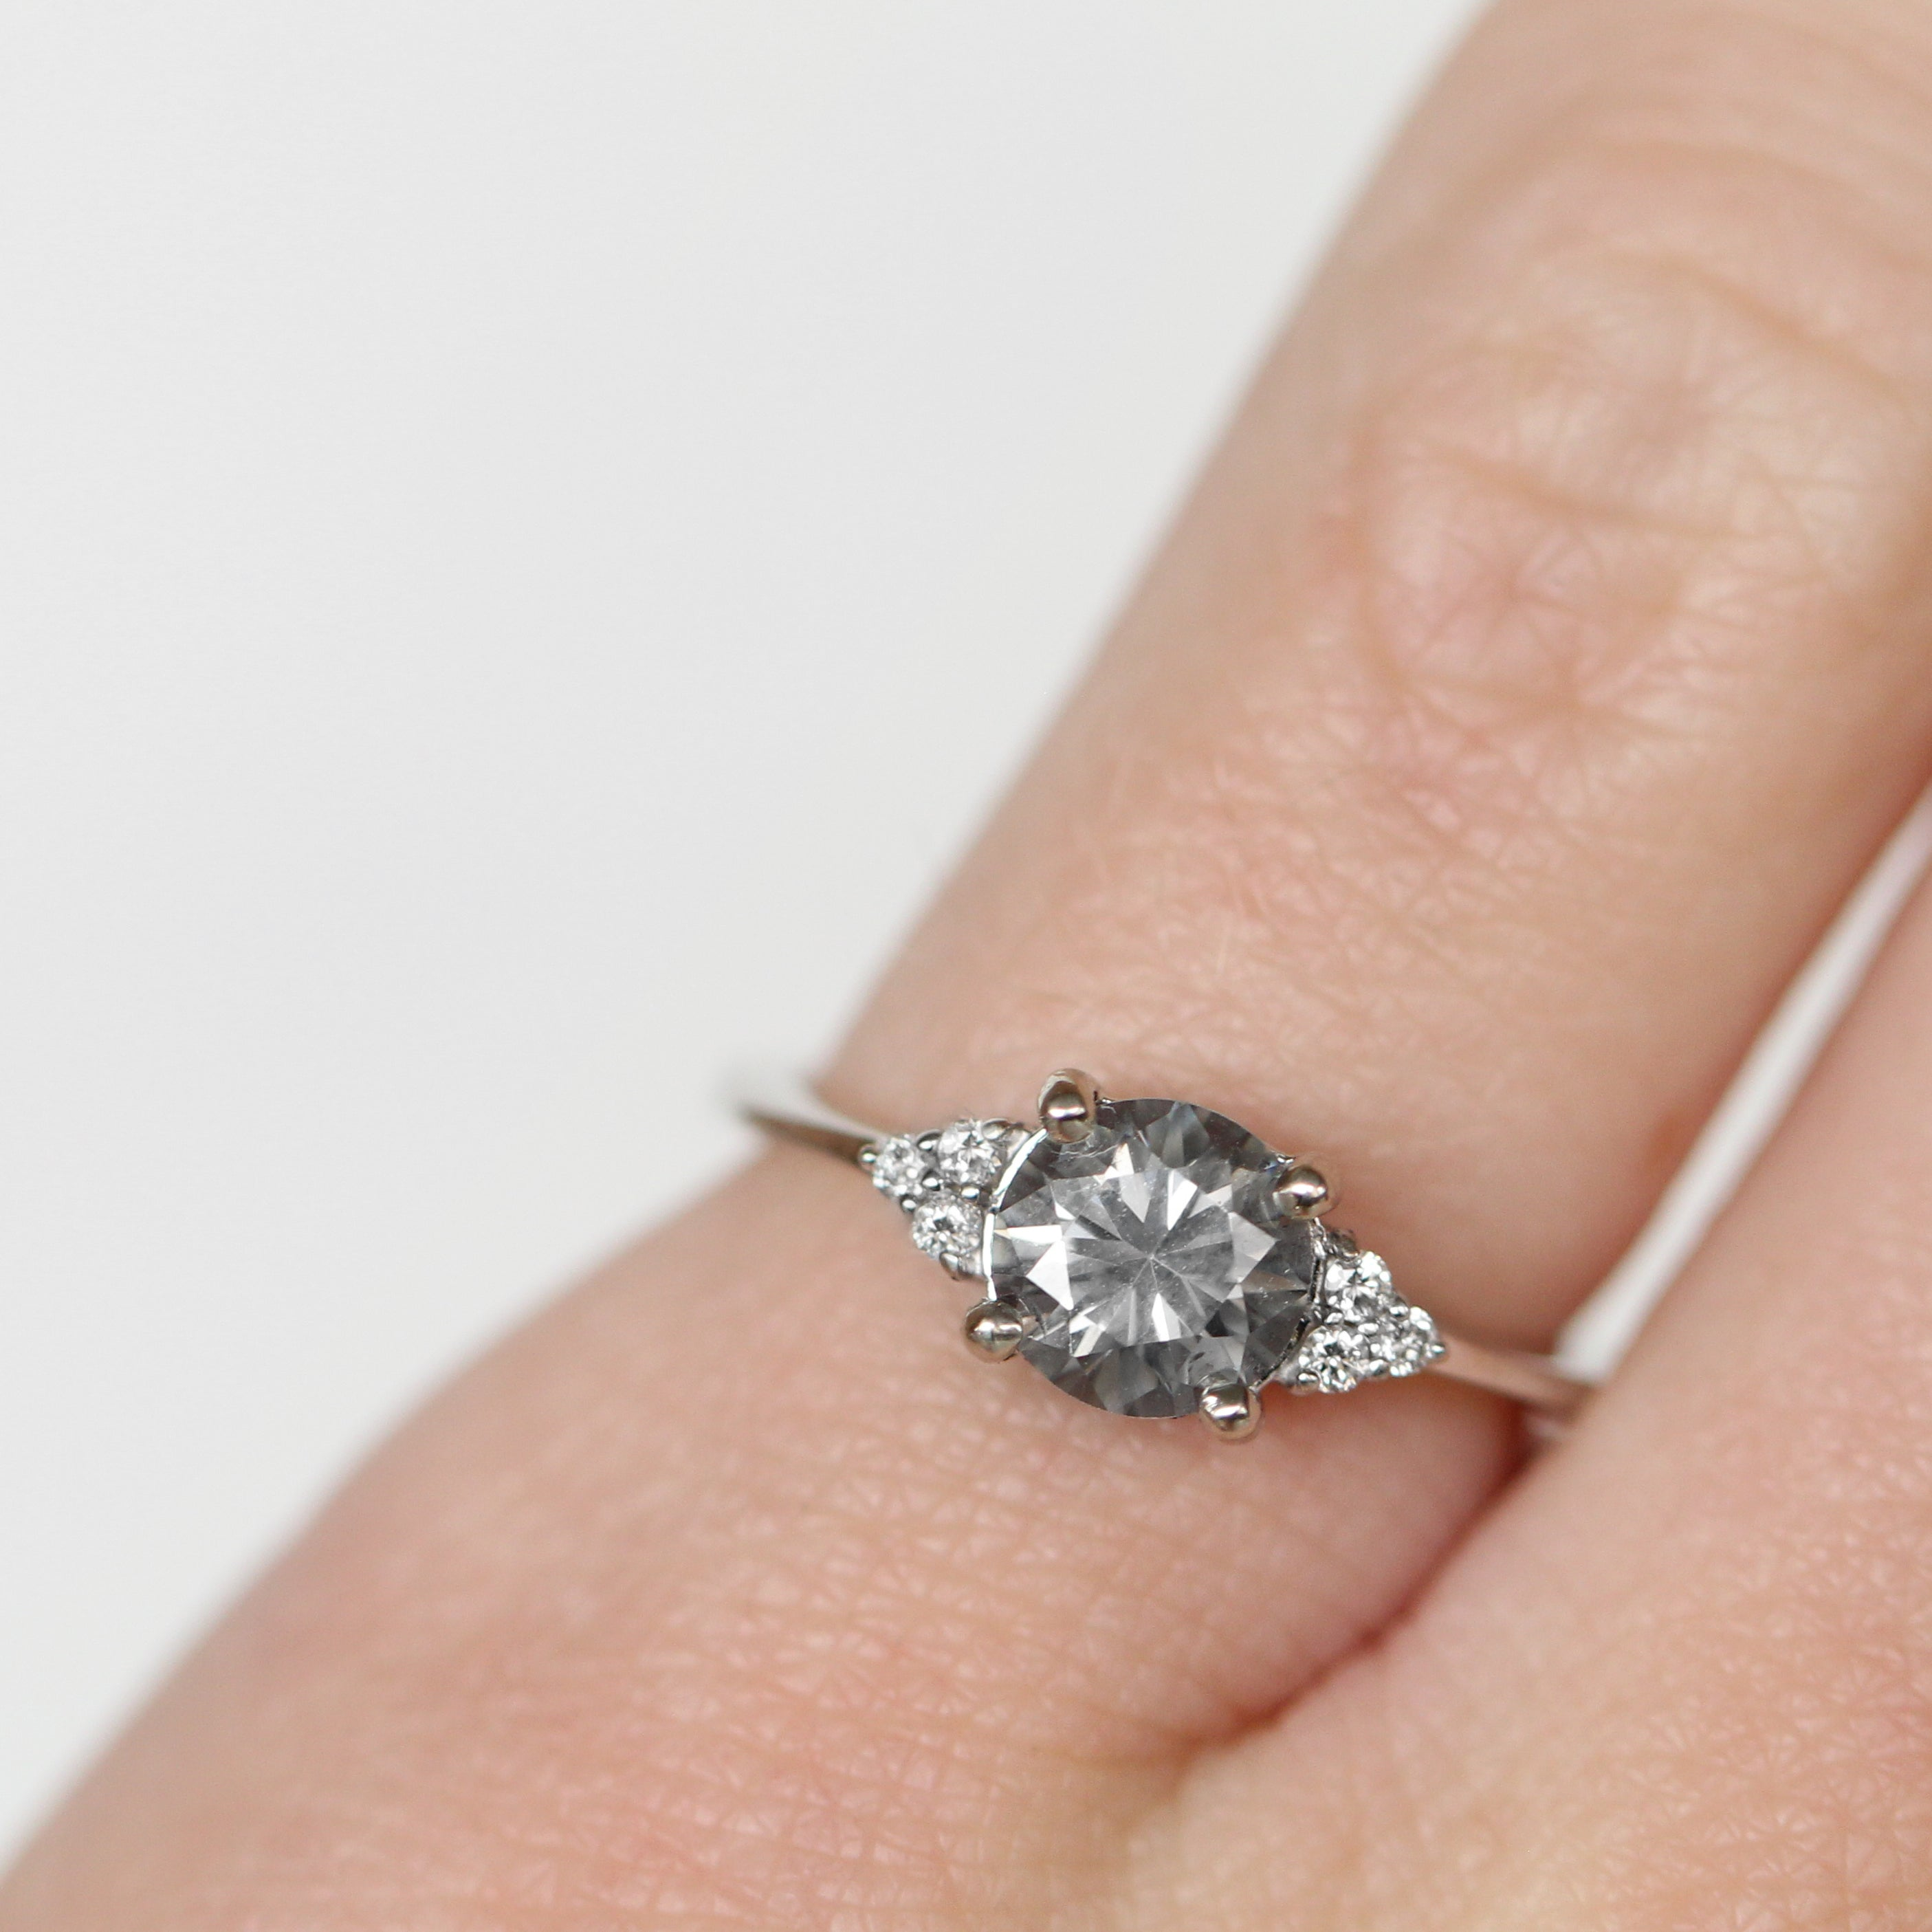 Imogene Ring with a 0.70 Carat Moissanite in 10k White Gold- Ready to Size and Ship - Celestial Diamonds ® by Midwinter Co.